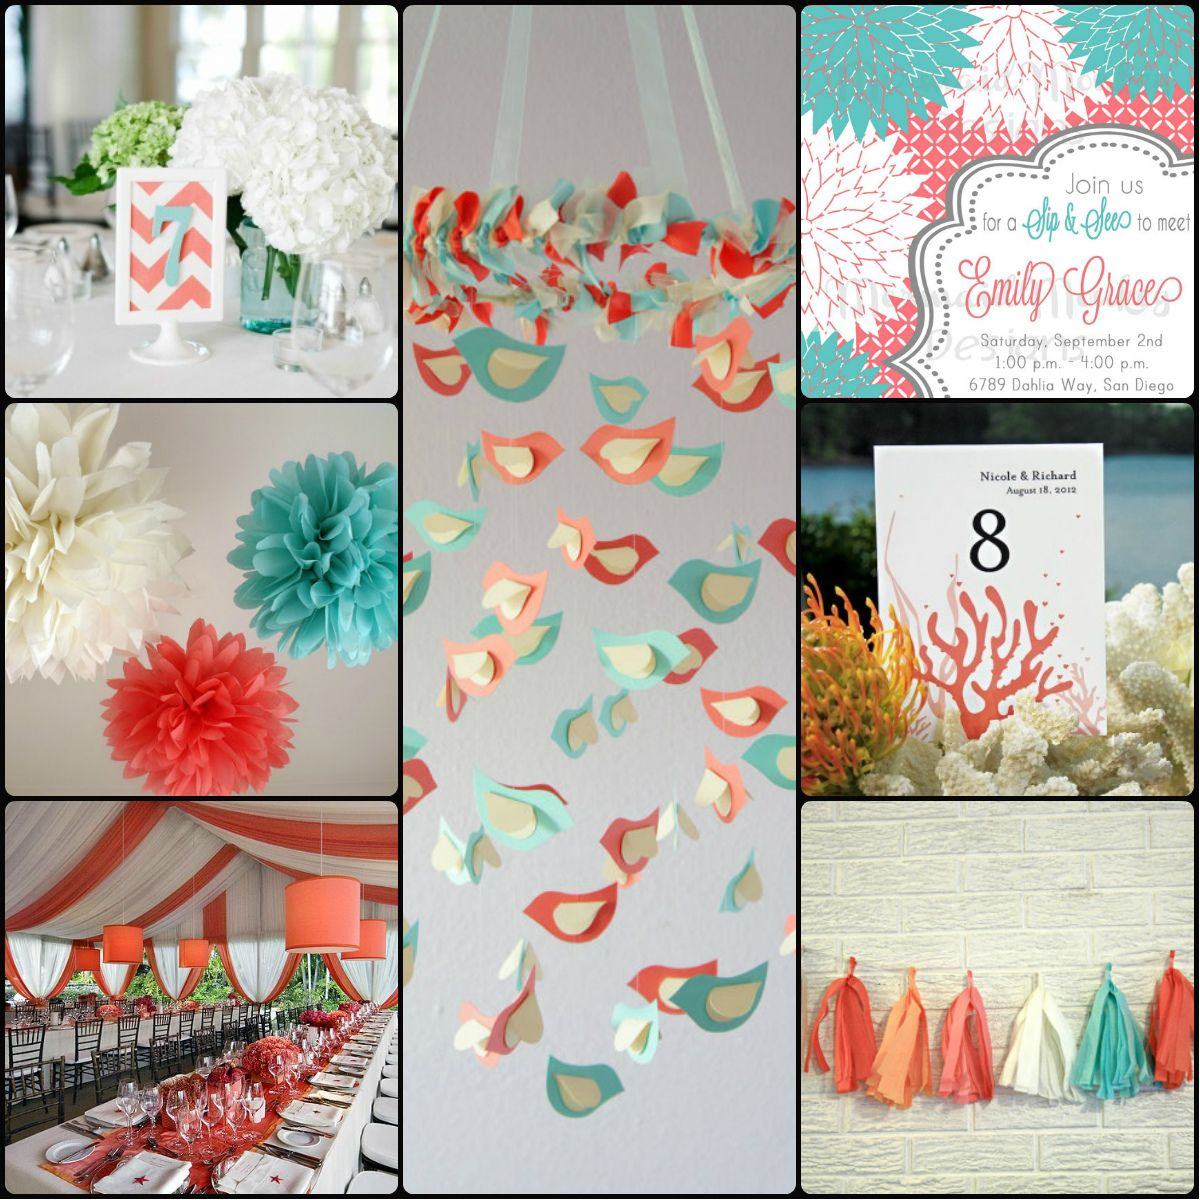 Turquoise and coral wedding coral and turquoise wedding outdoor turquoise and coral wedding coral and turquoise wedding outdoor decor wedding decorations ideas junglespirit Images